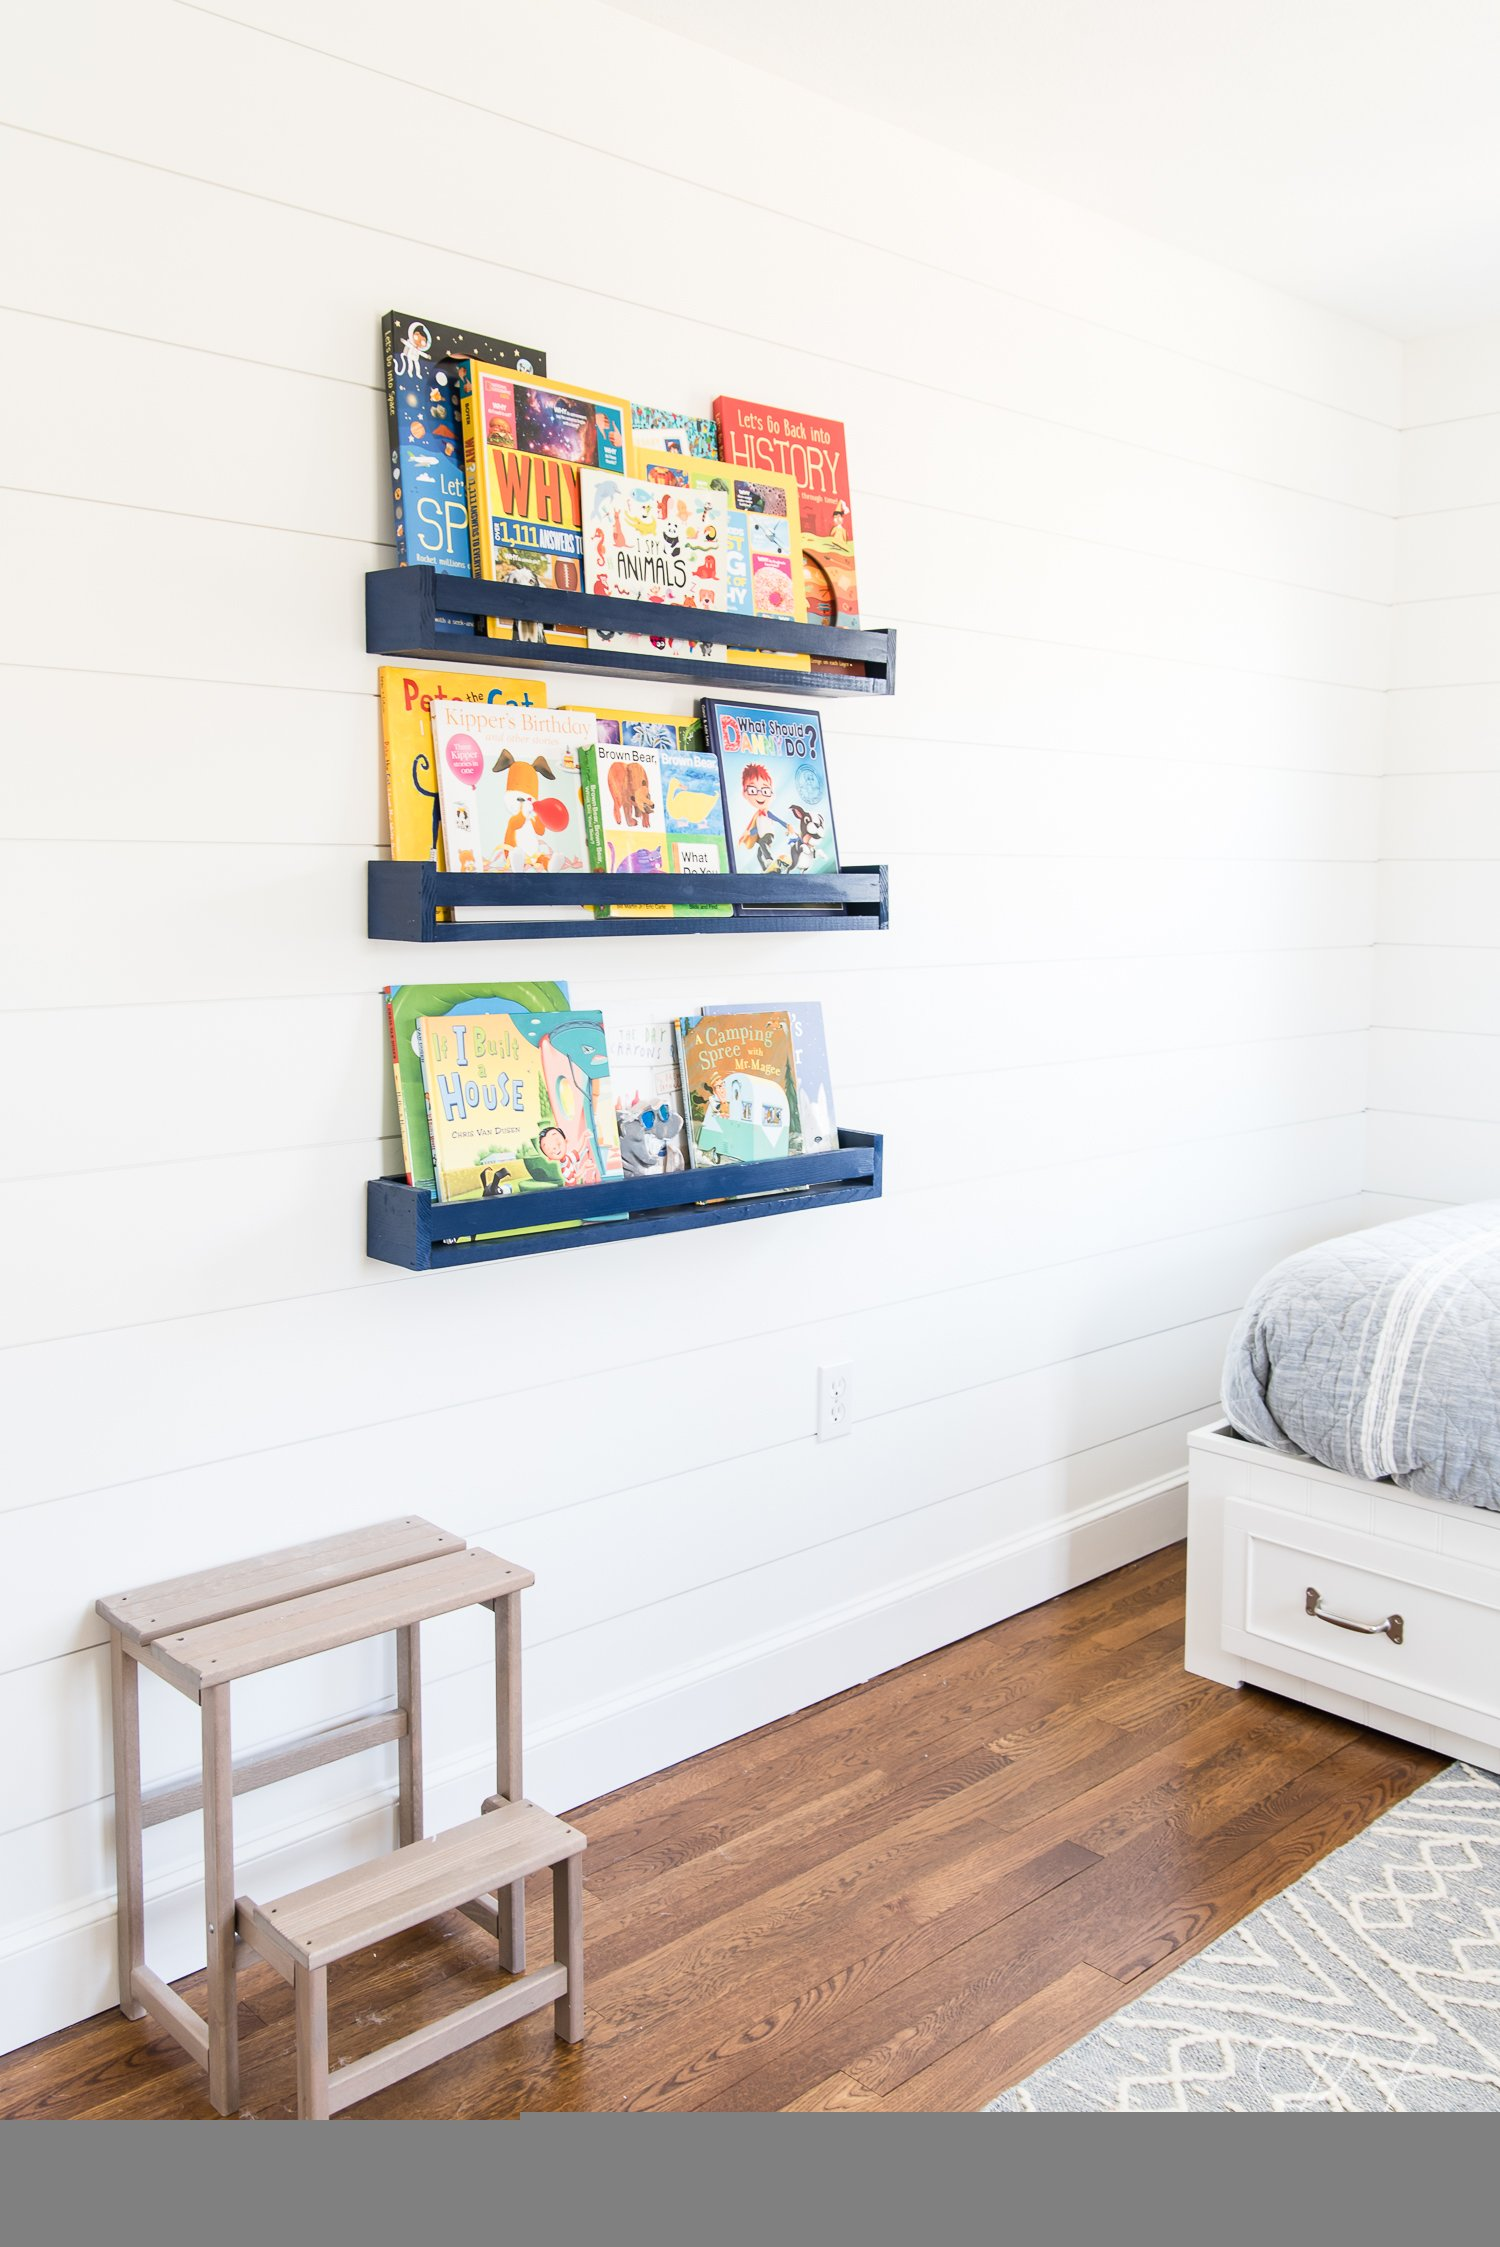 DIY book navy blue book ledges filled with kid's books form part of the decor